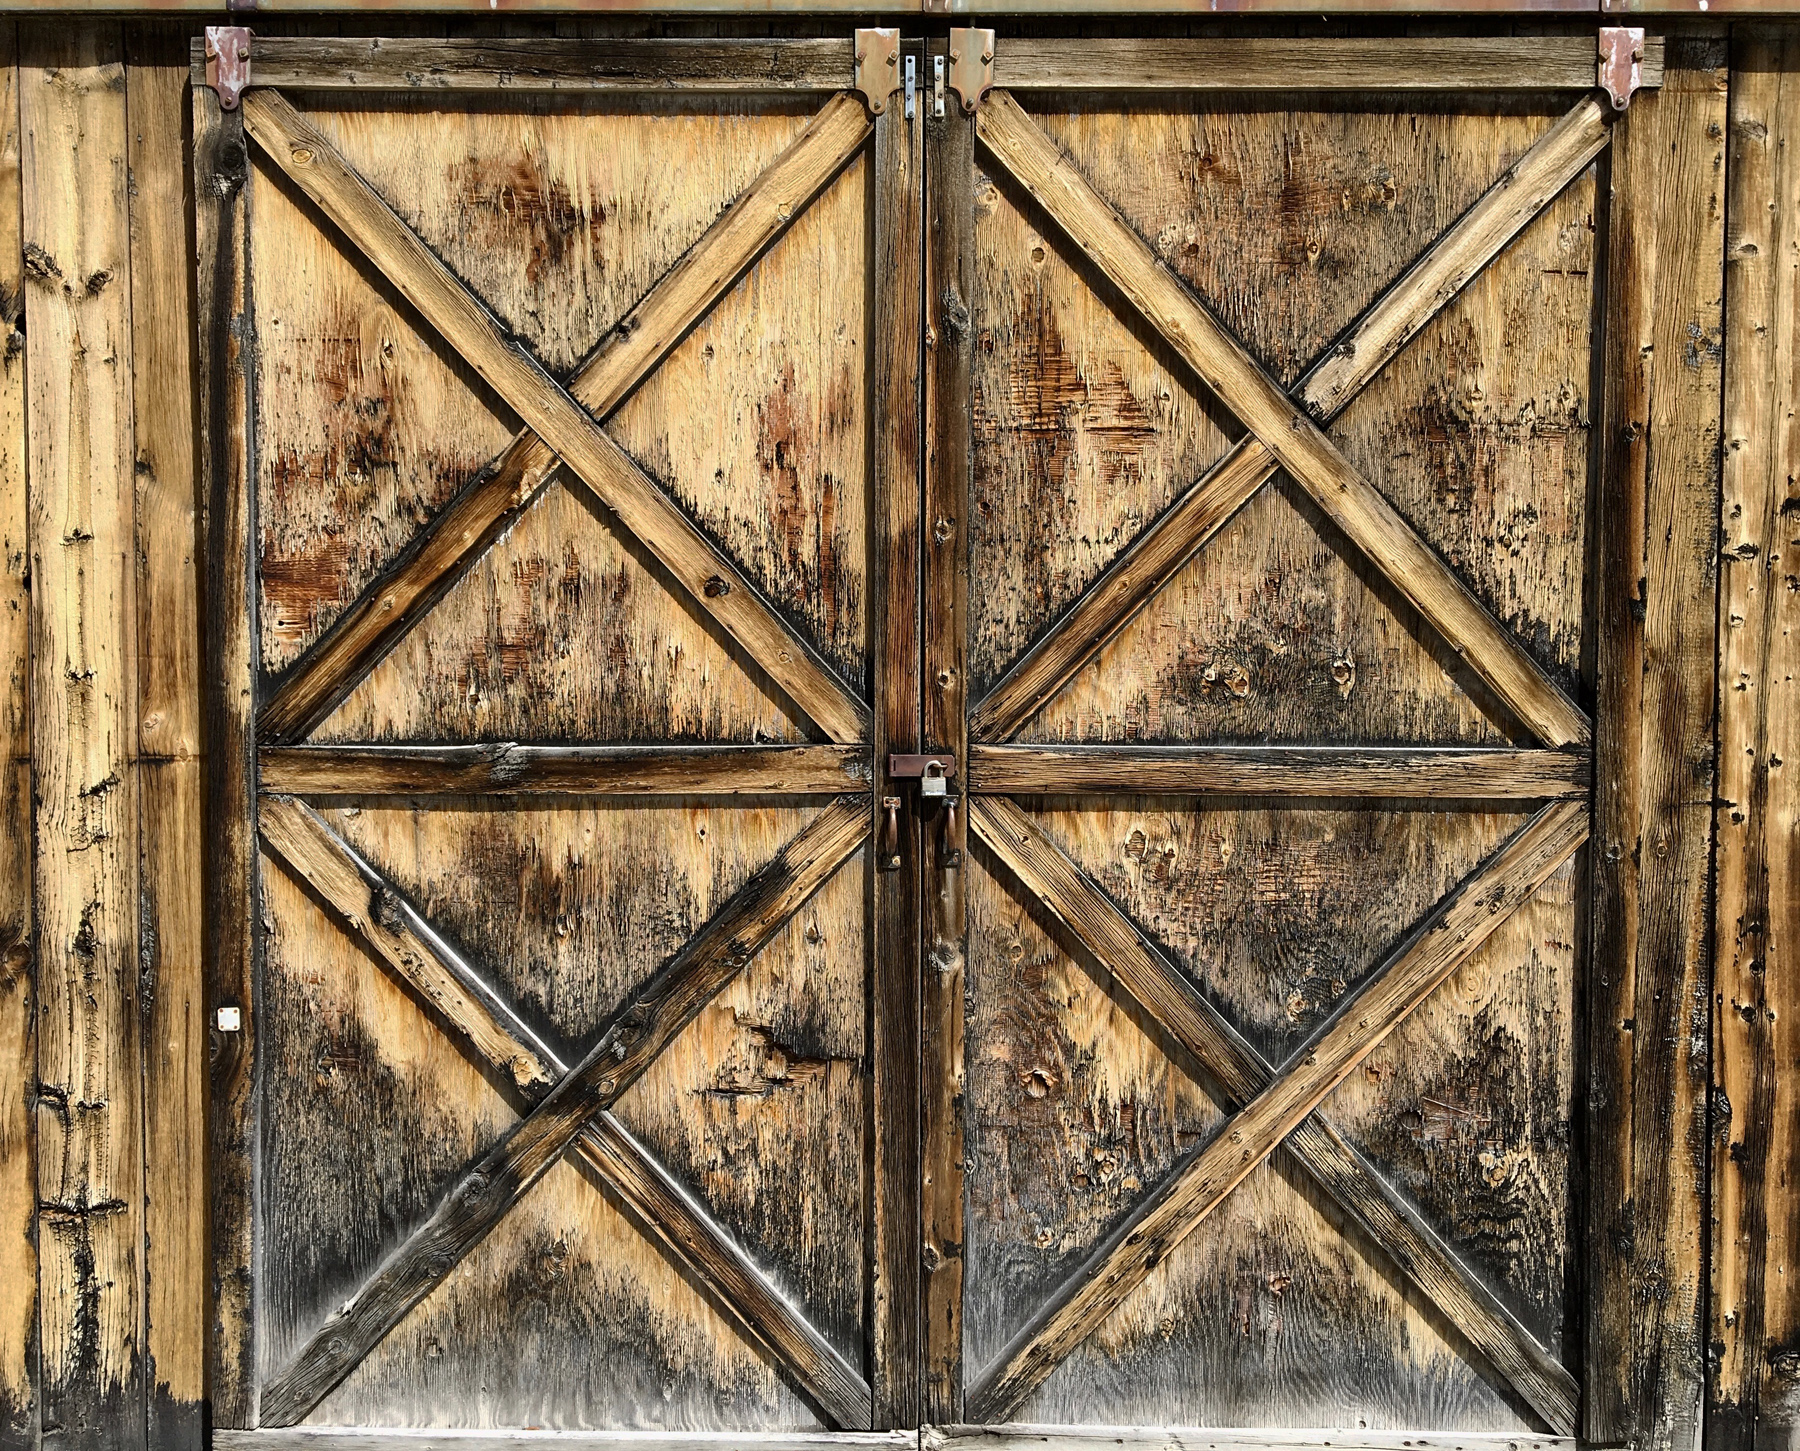 Barn doors at Grand Encampment, Wyoming